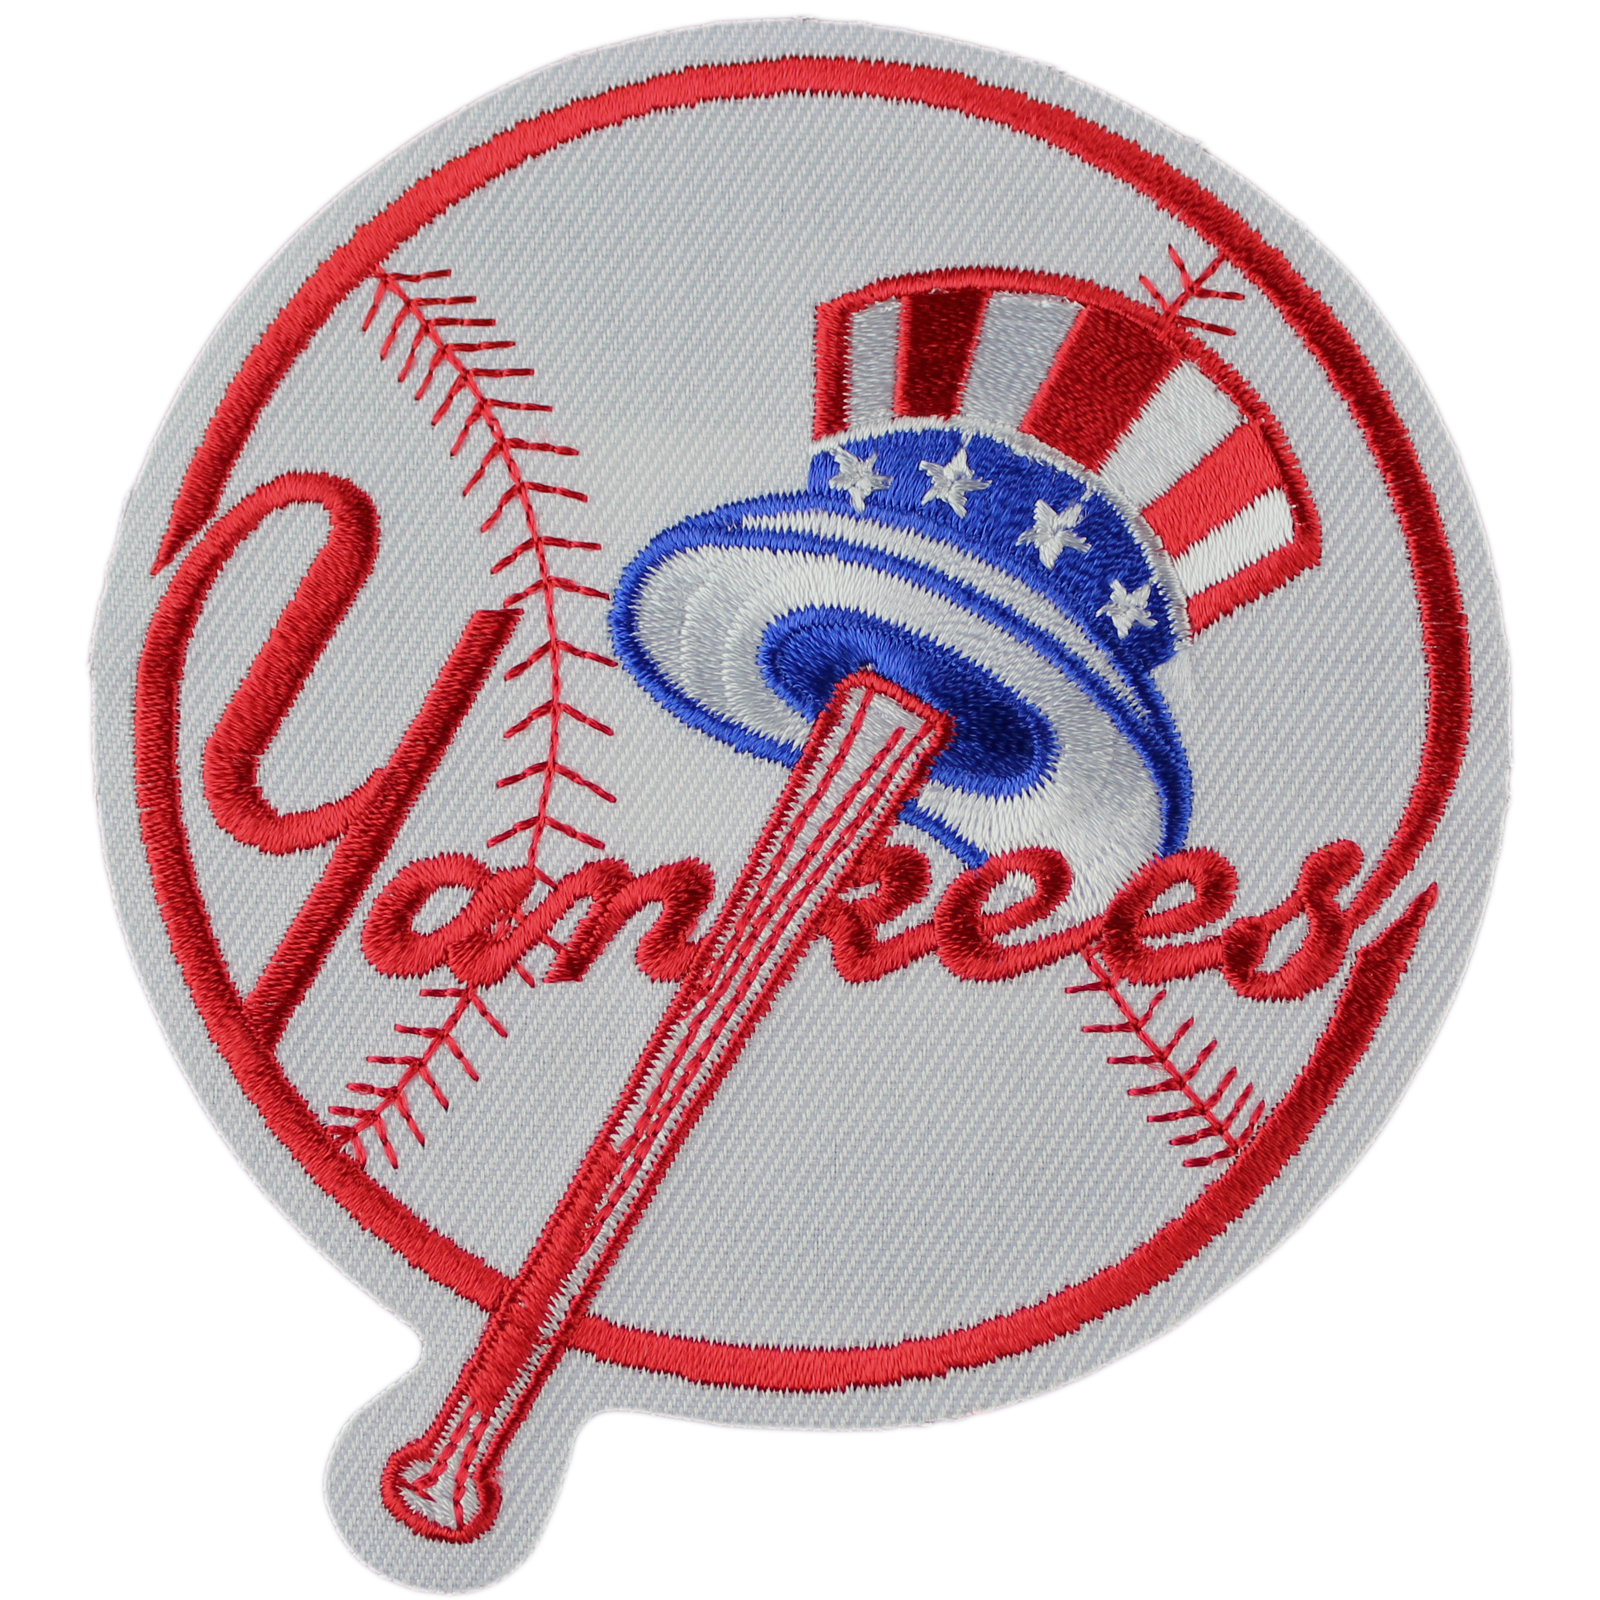 Details about New York Yankees Patch Jersey Round Top Hat Logo Jersey  Sleeve MLB Emblem.